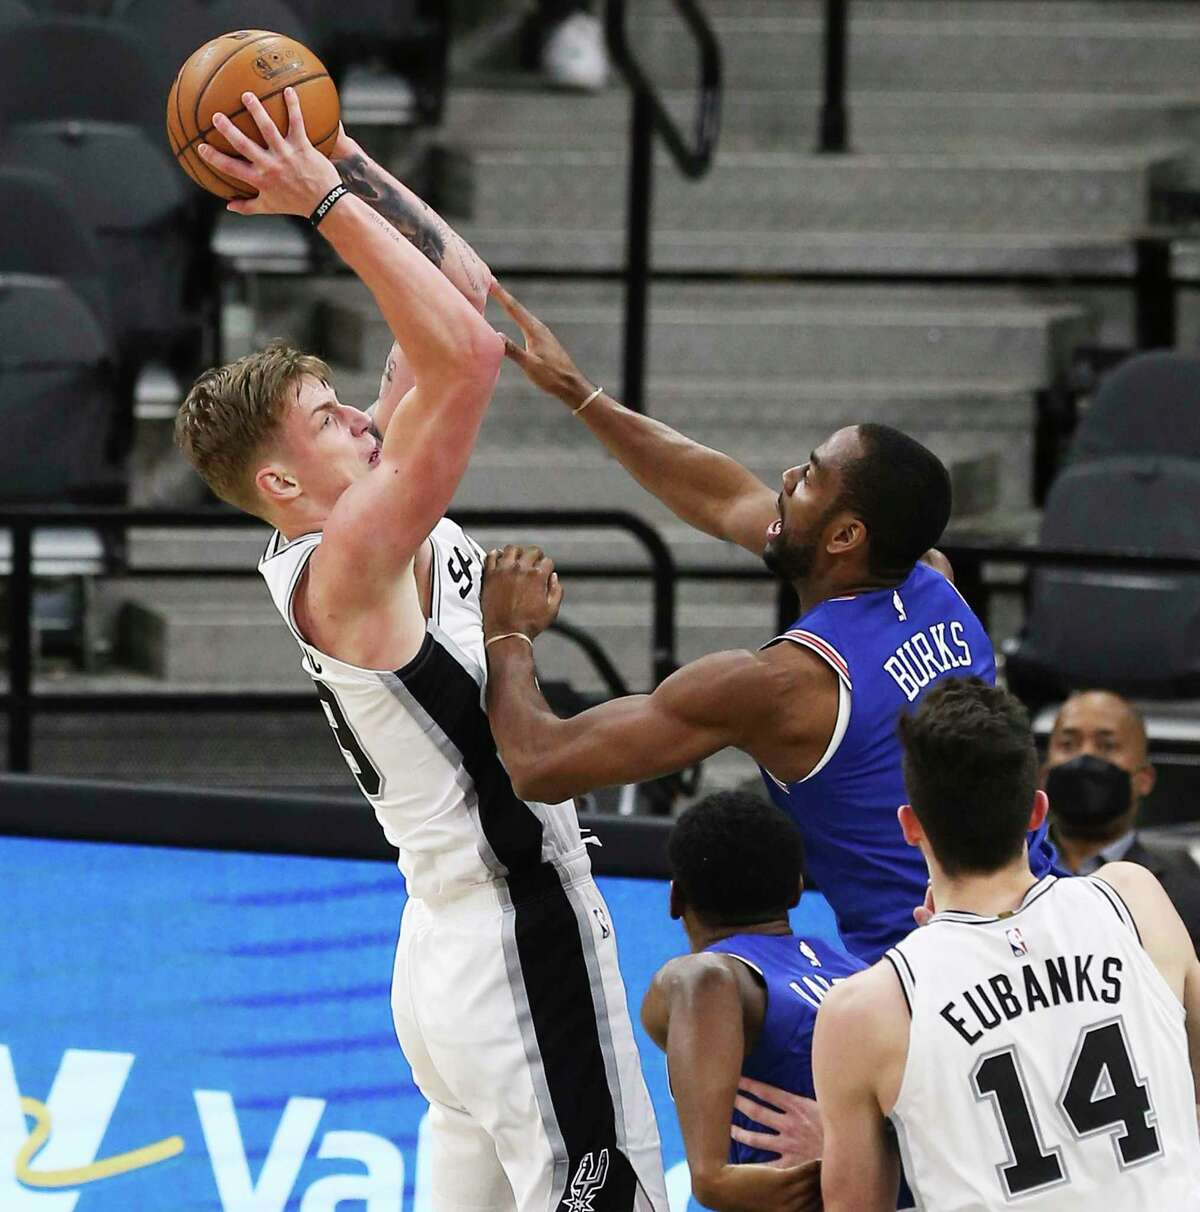 Spurs' Luka Samanic (19) scores against New York Knicks' Alec Burks (18) at the AT&T Center on Tuesday, Mar. 2, 2021.